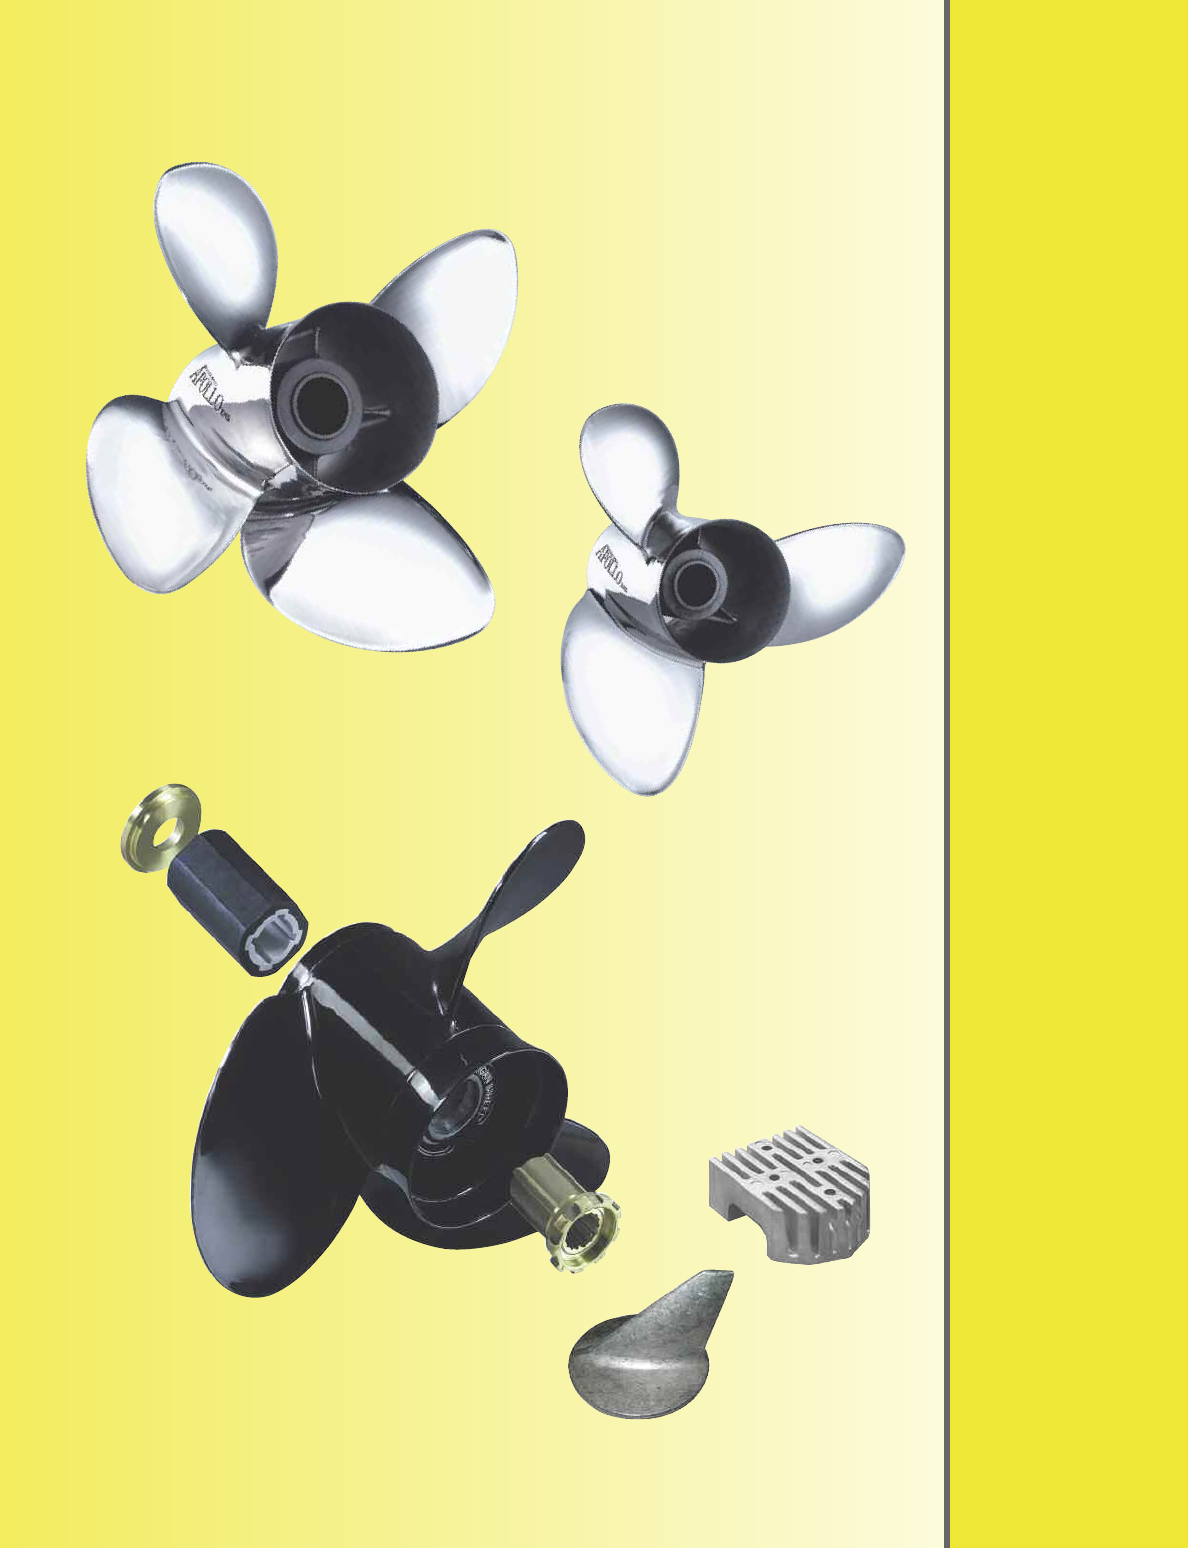 13 3//4X21 Pitch Aluminum Outboard Propeller For Yamaha 6G5-45943-01-98 150-250HP